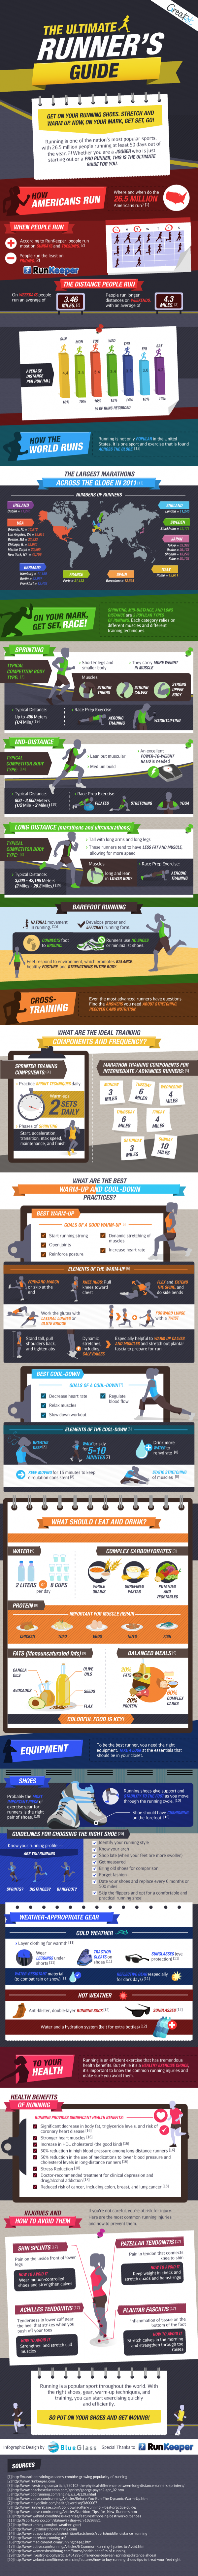 The Ultimate Guide to Running Infographic